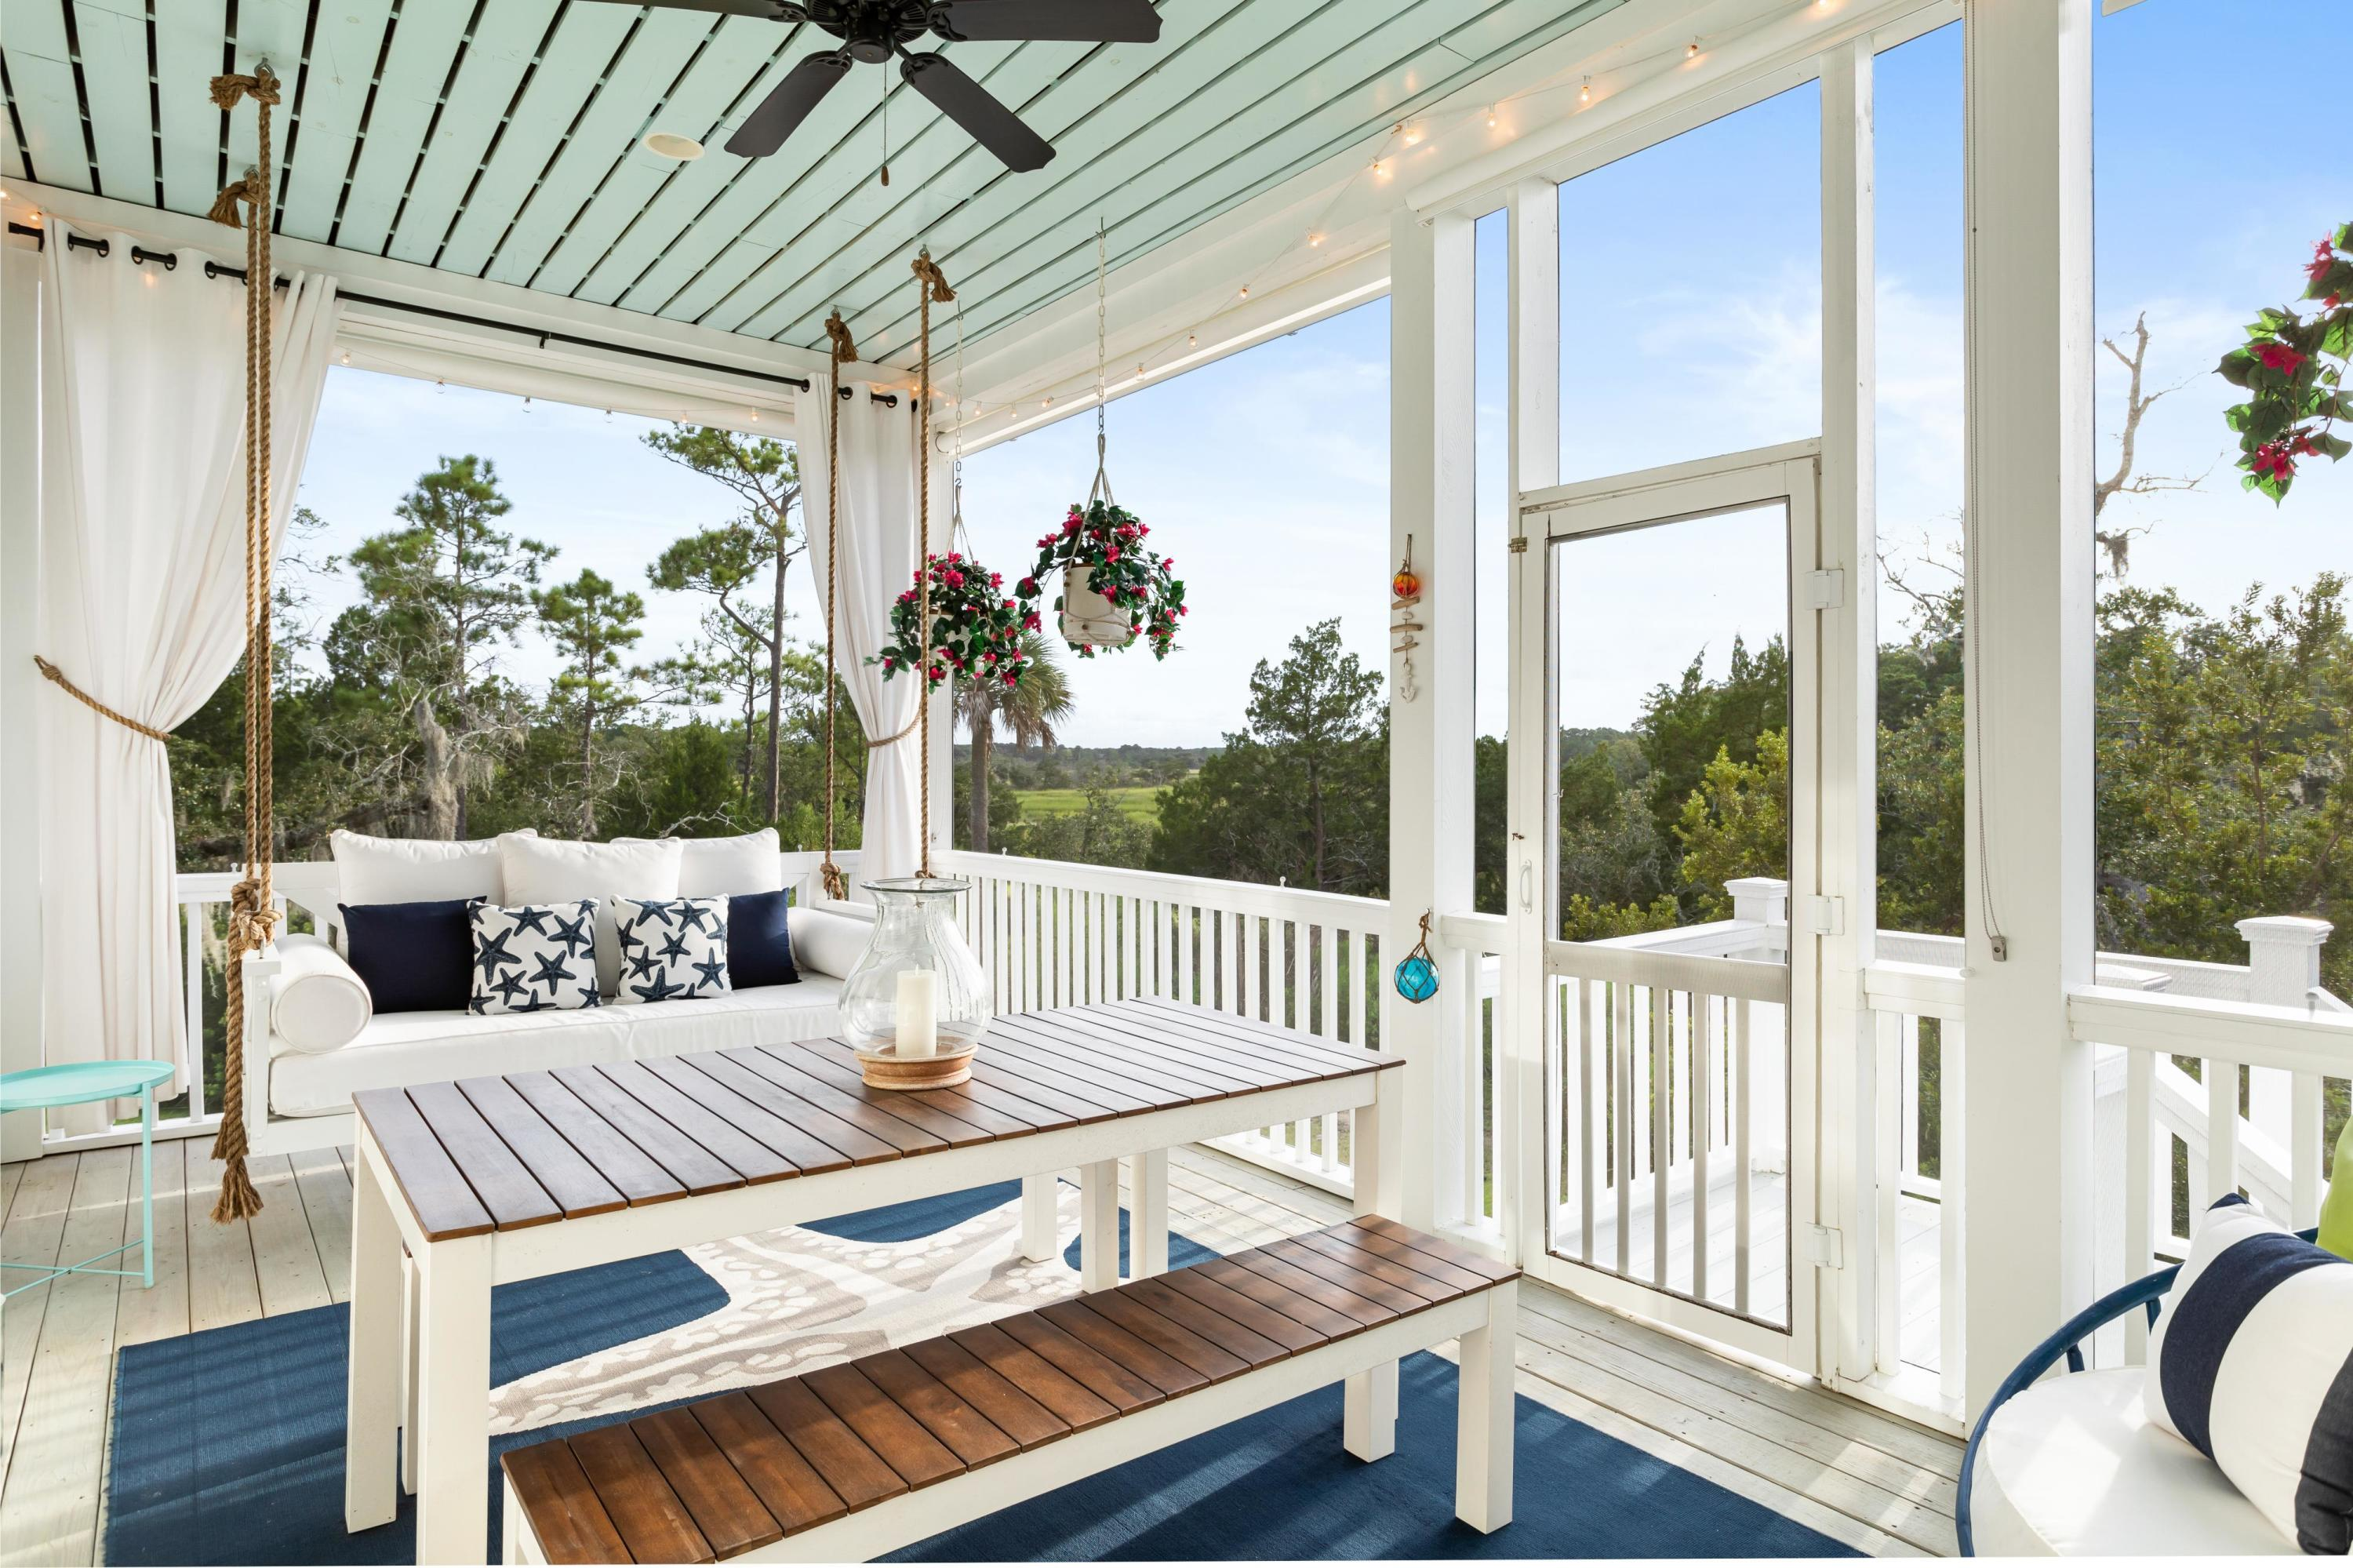 Stratton by the Sound Homes For Sale - 1400 Stratton, Mount Pleasant, SC - 32